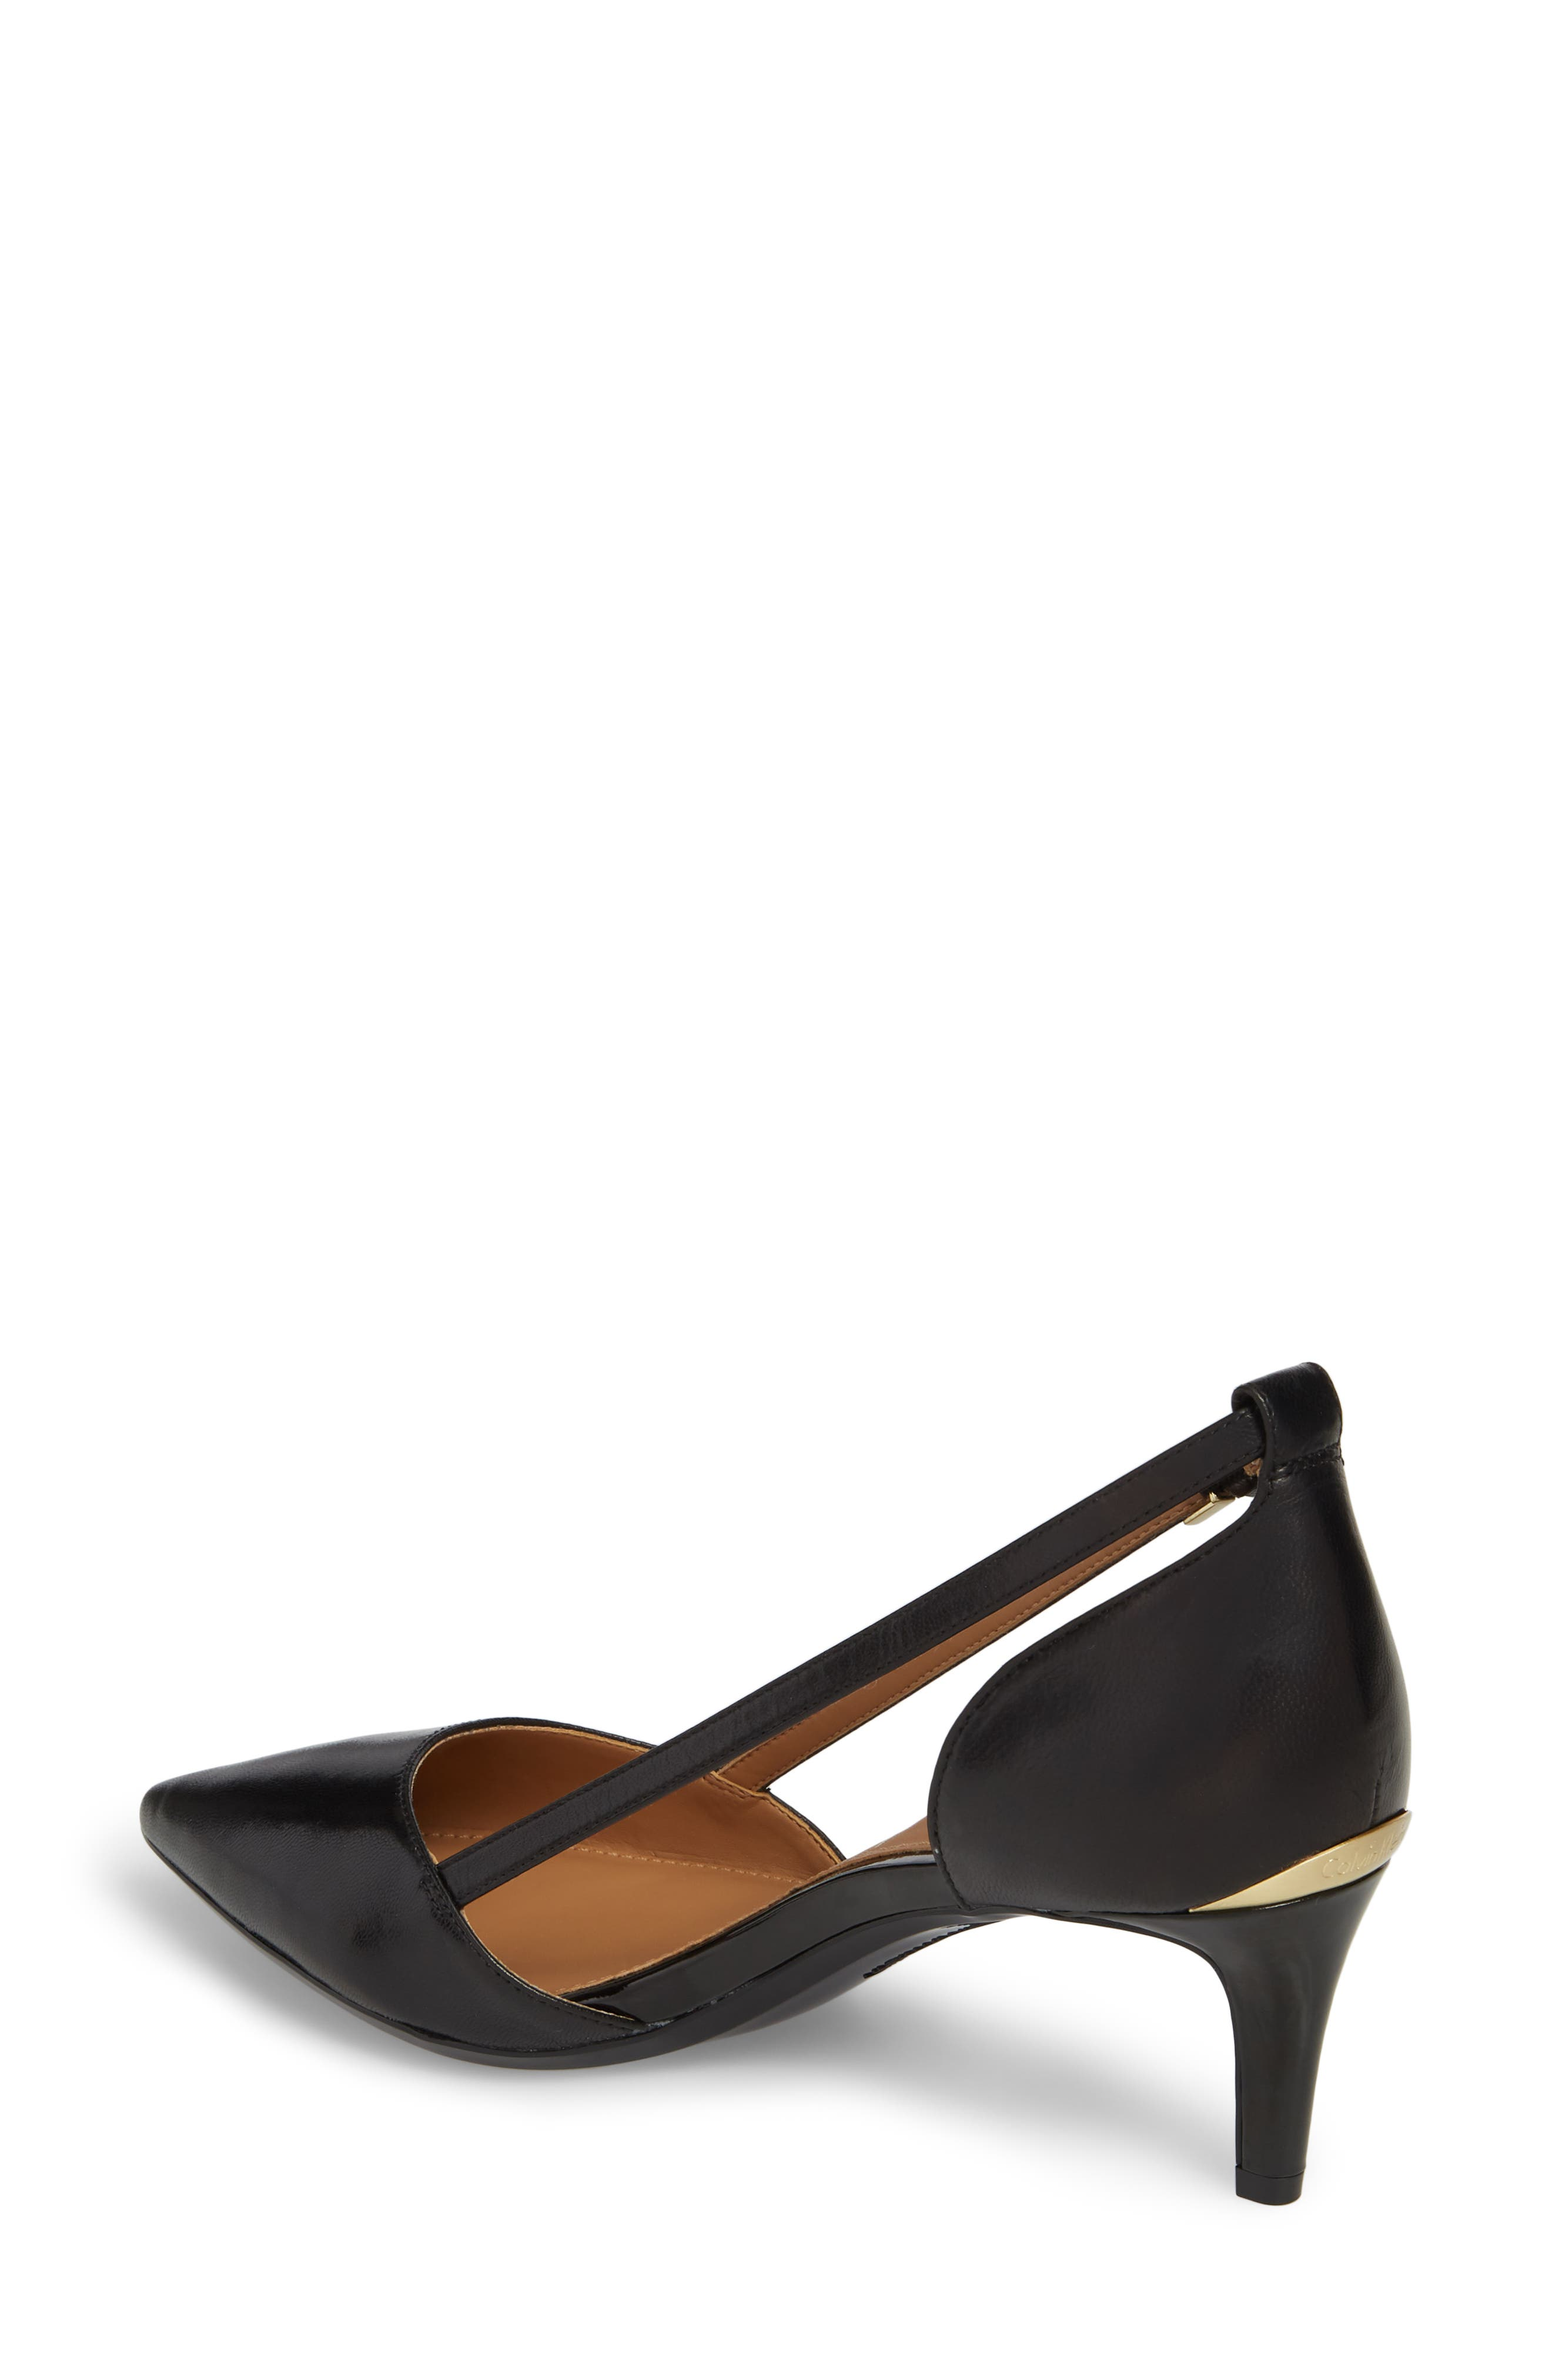 Pashka Strappy Open Sided Pump,                             Alternate thumbnail 2, color,                             BLACK LEATHER